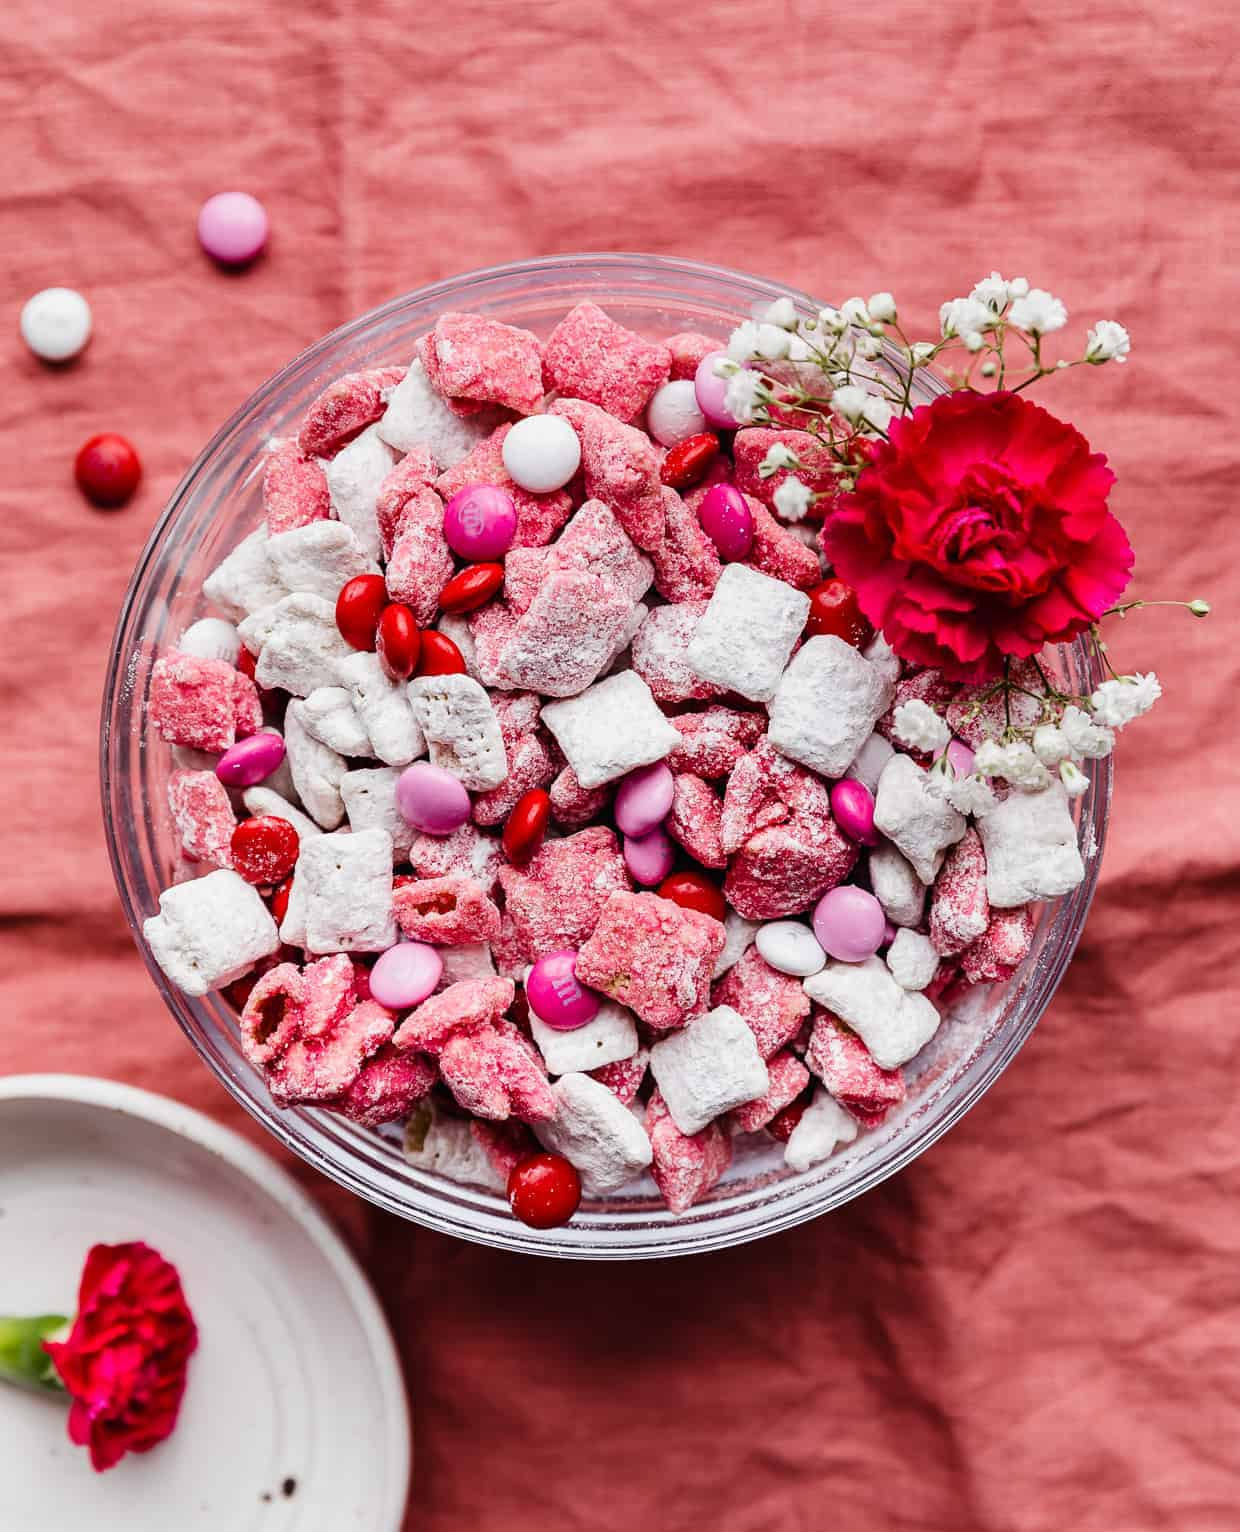 A bowl of white and pink muddy buddies and M&M's against a pink background.